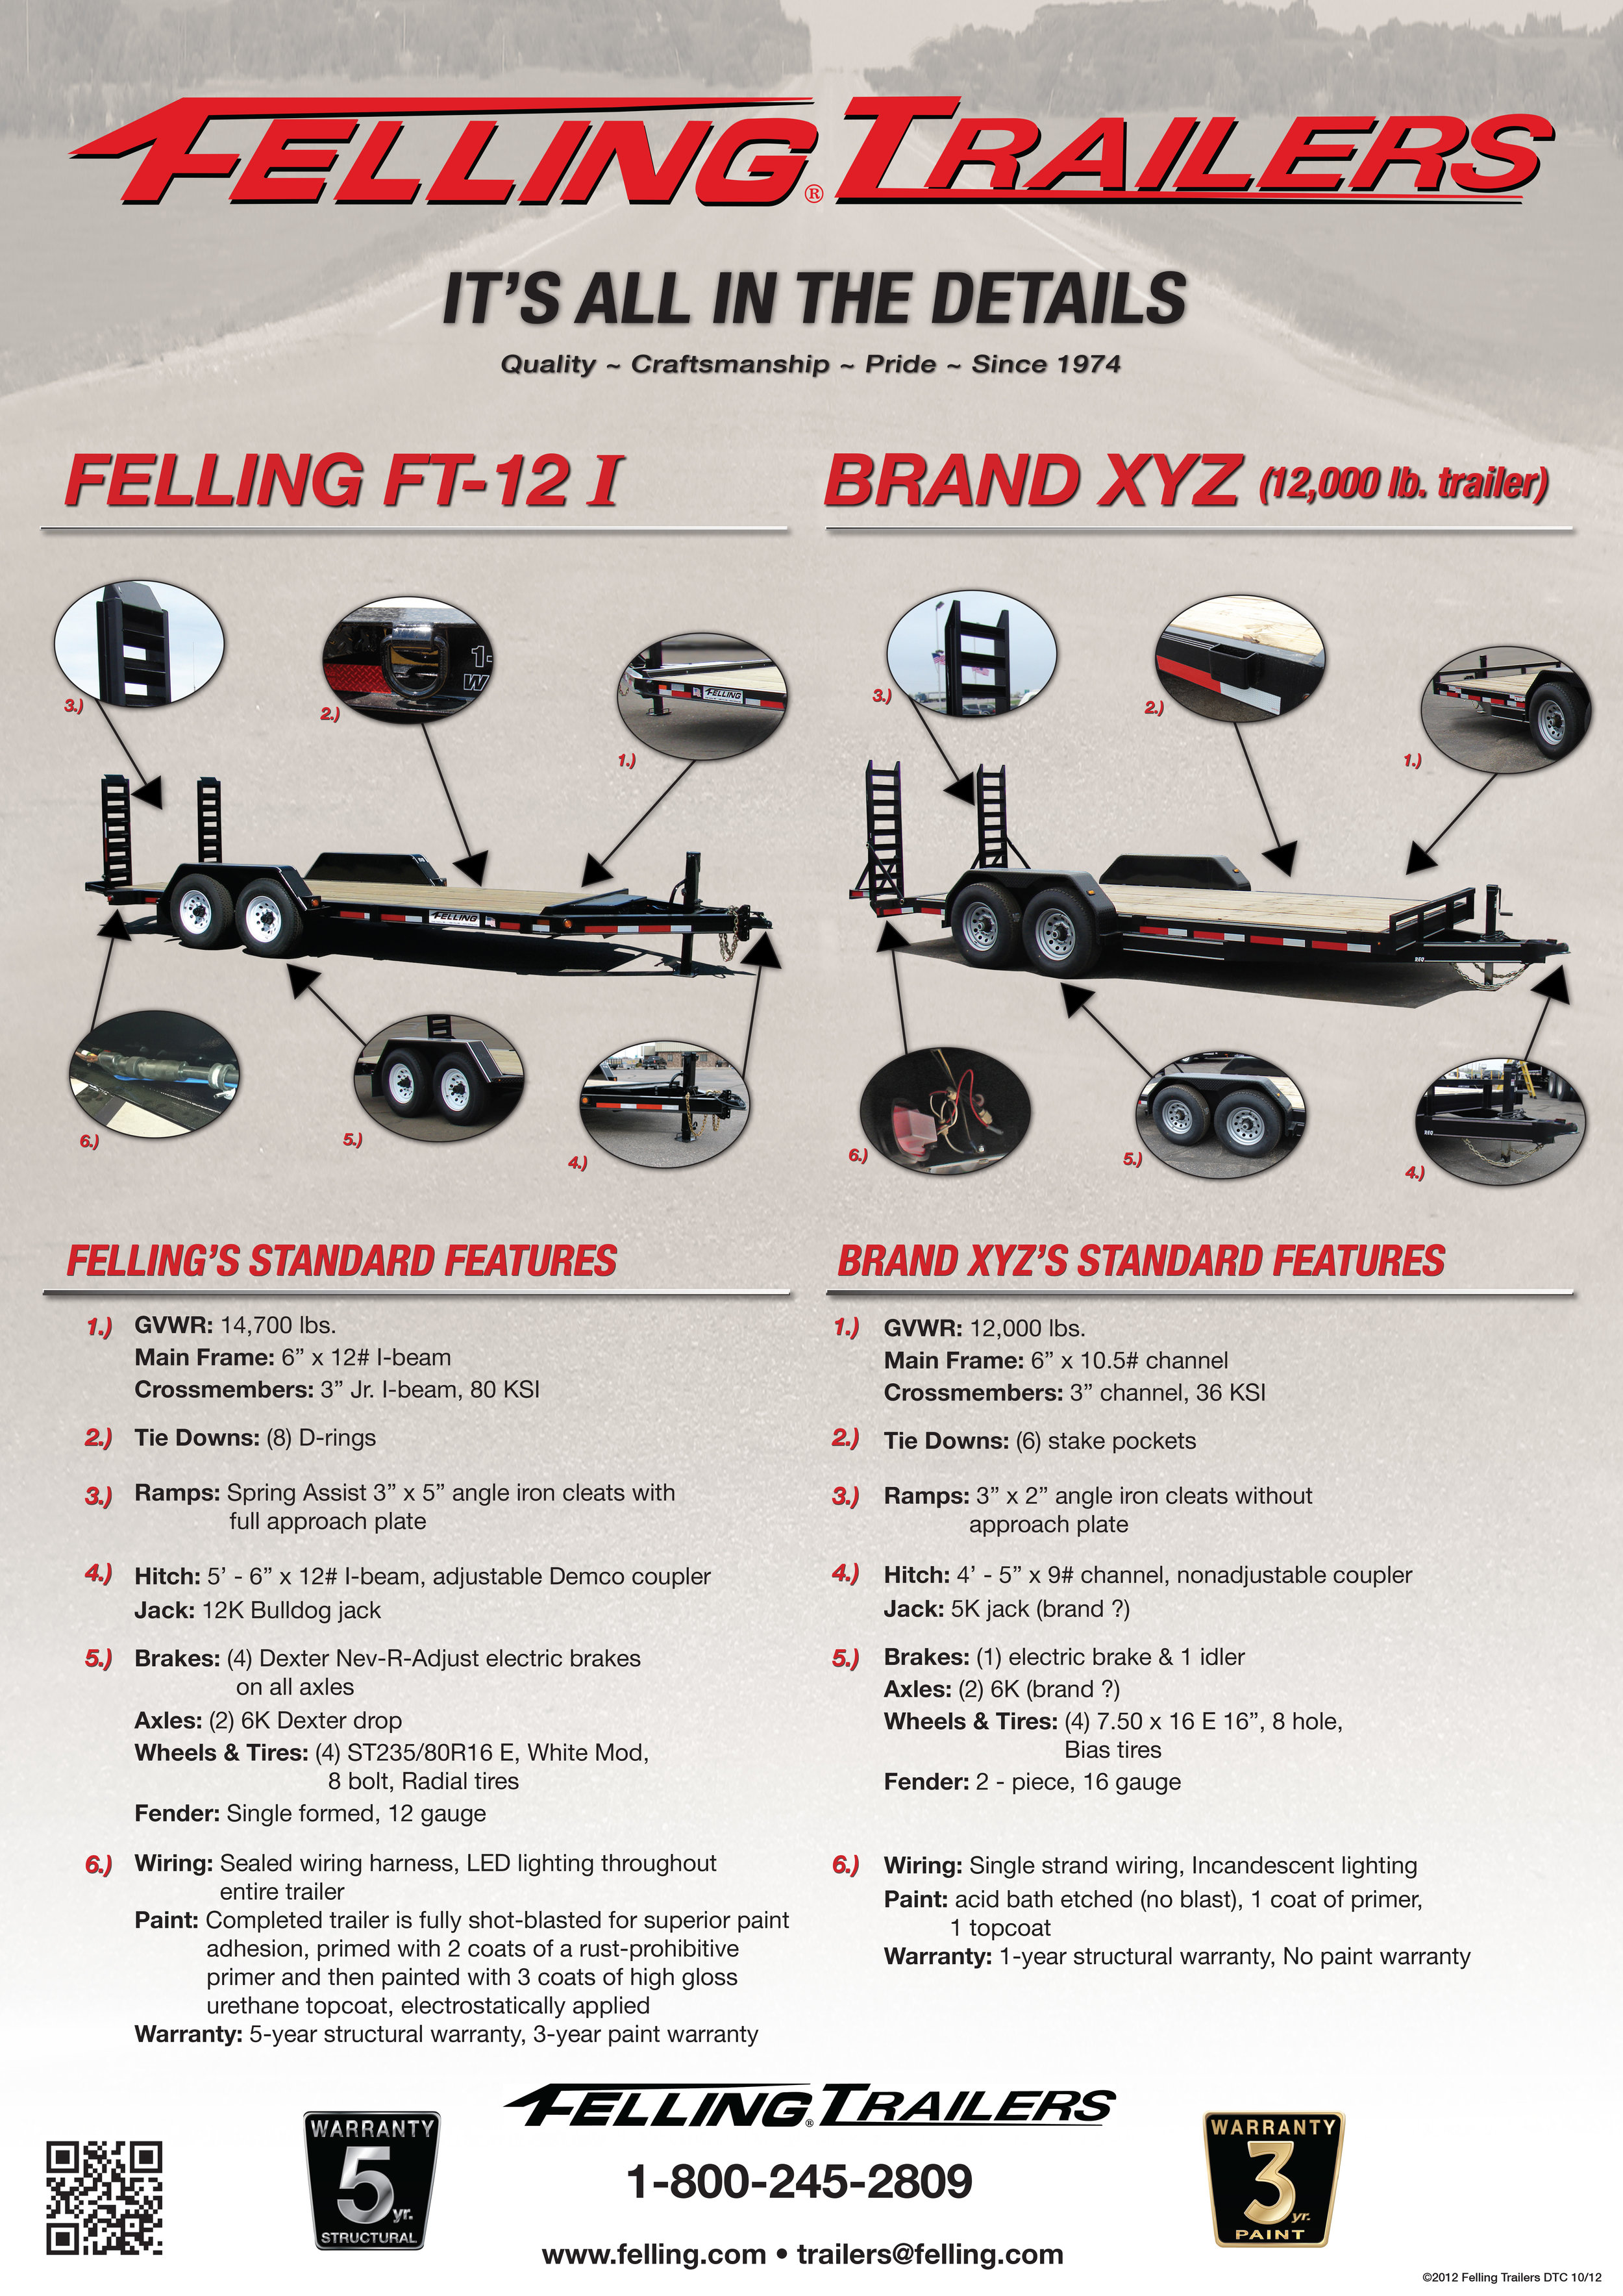 felling-trailers-details